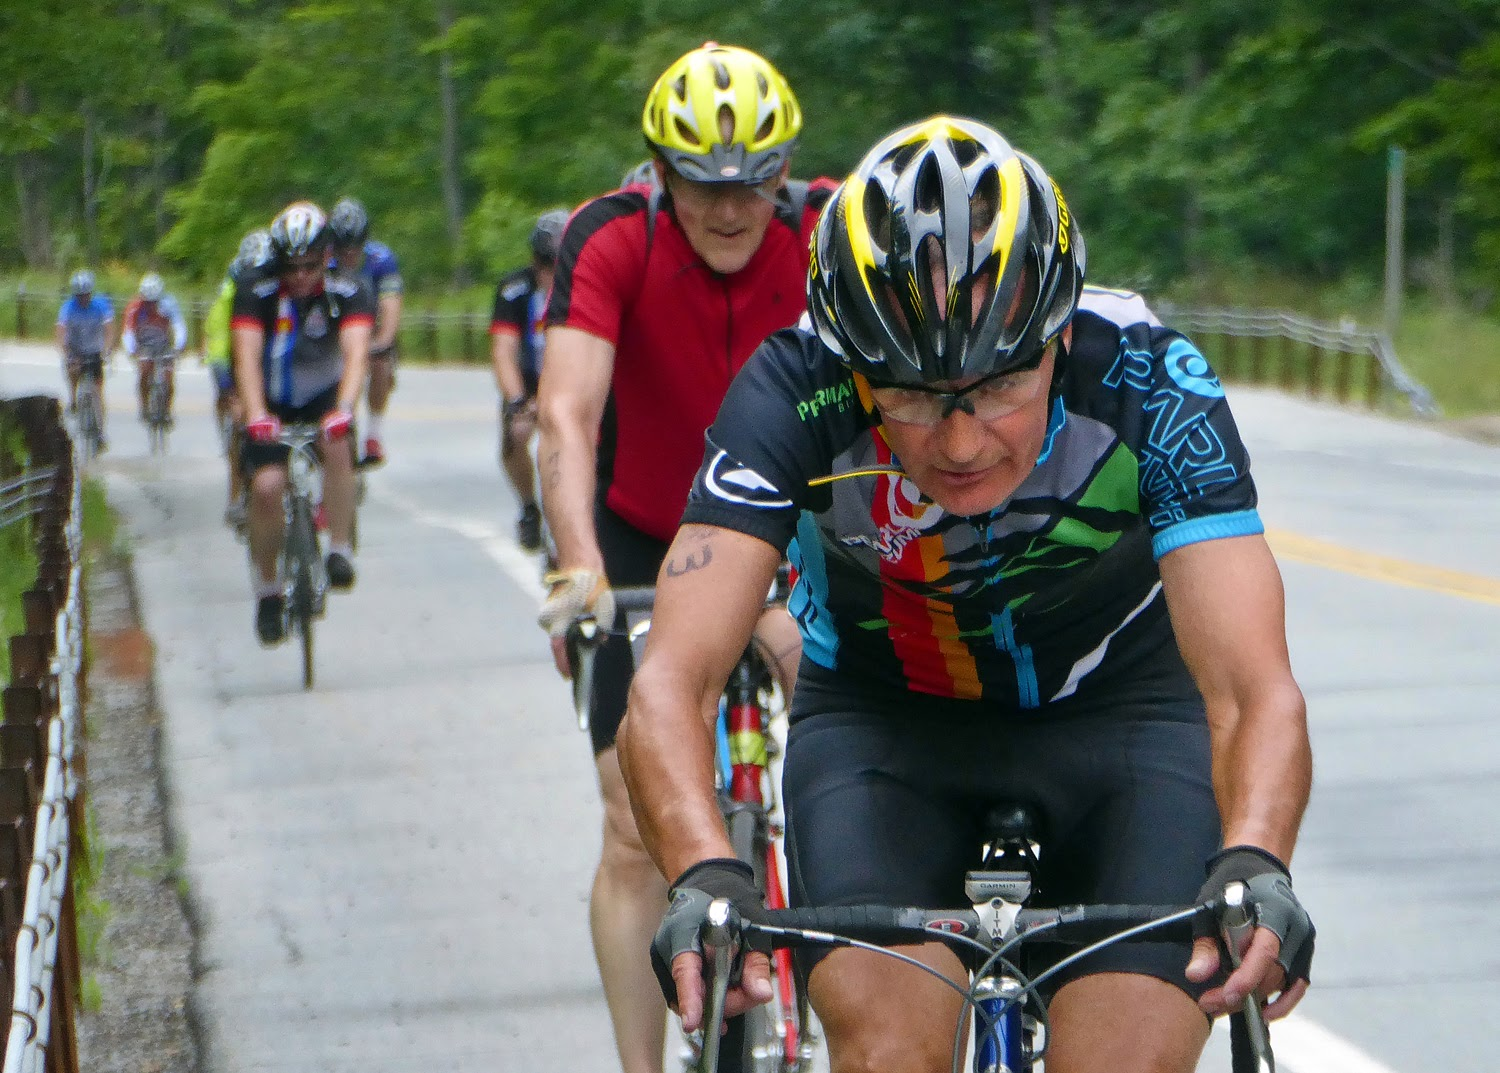 It's a hard pull on the steep climb north out of Speculator on Route 30. Copyright by Dave Kraus/ Krausgrafik.com